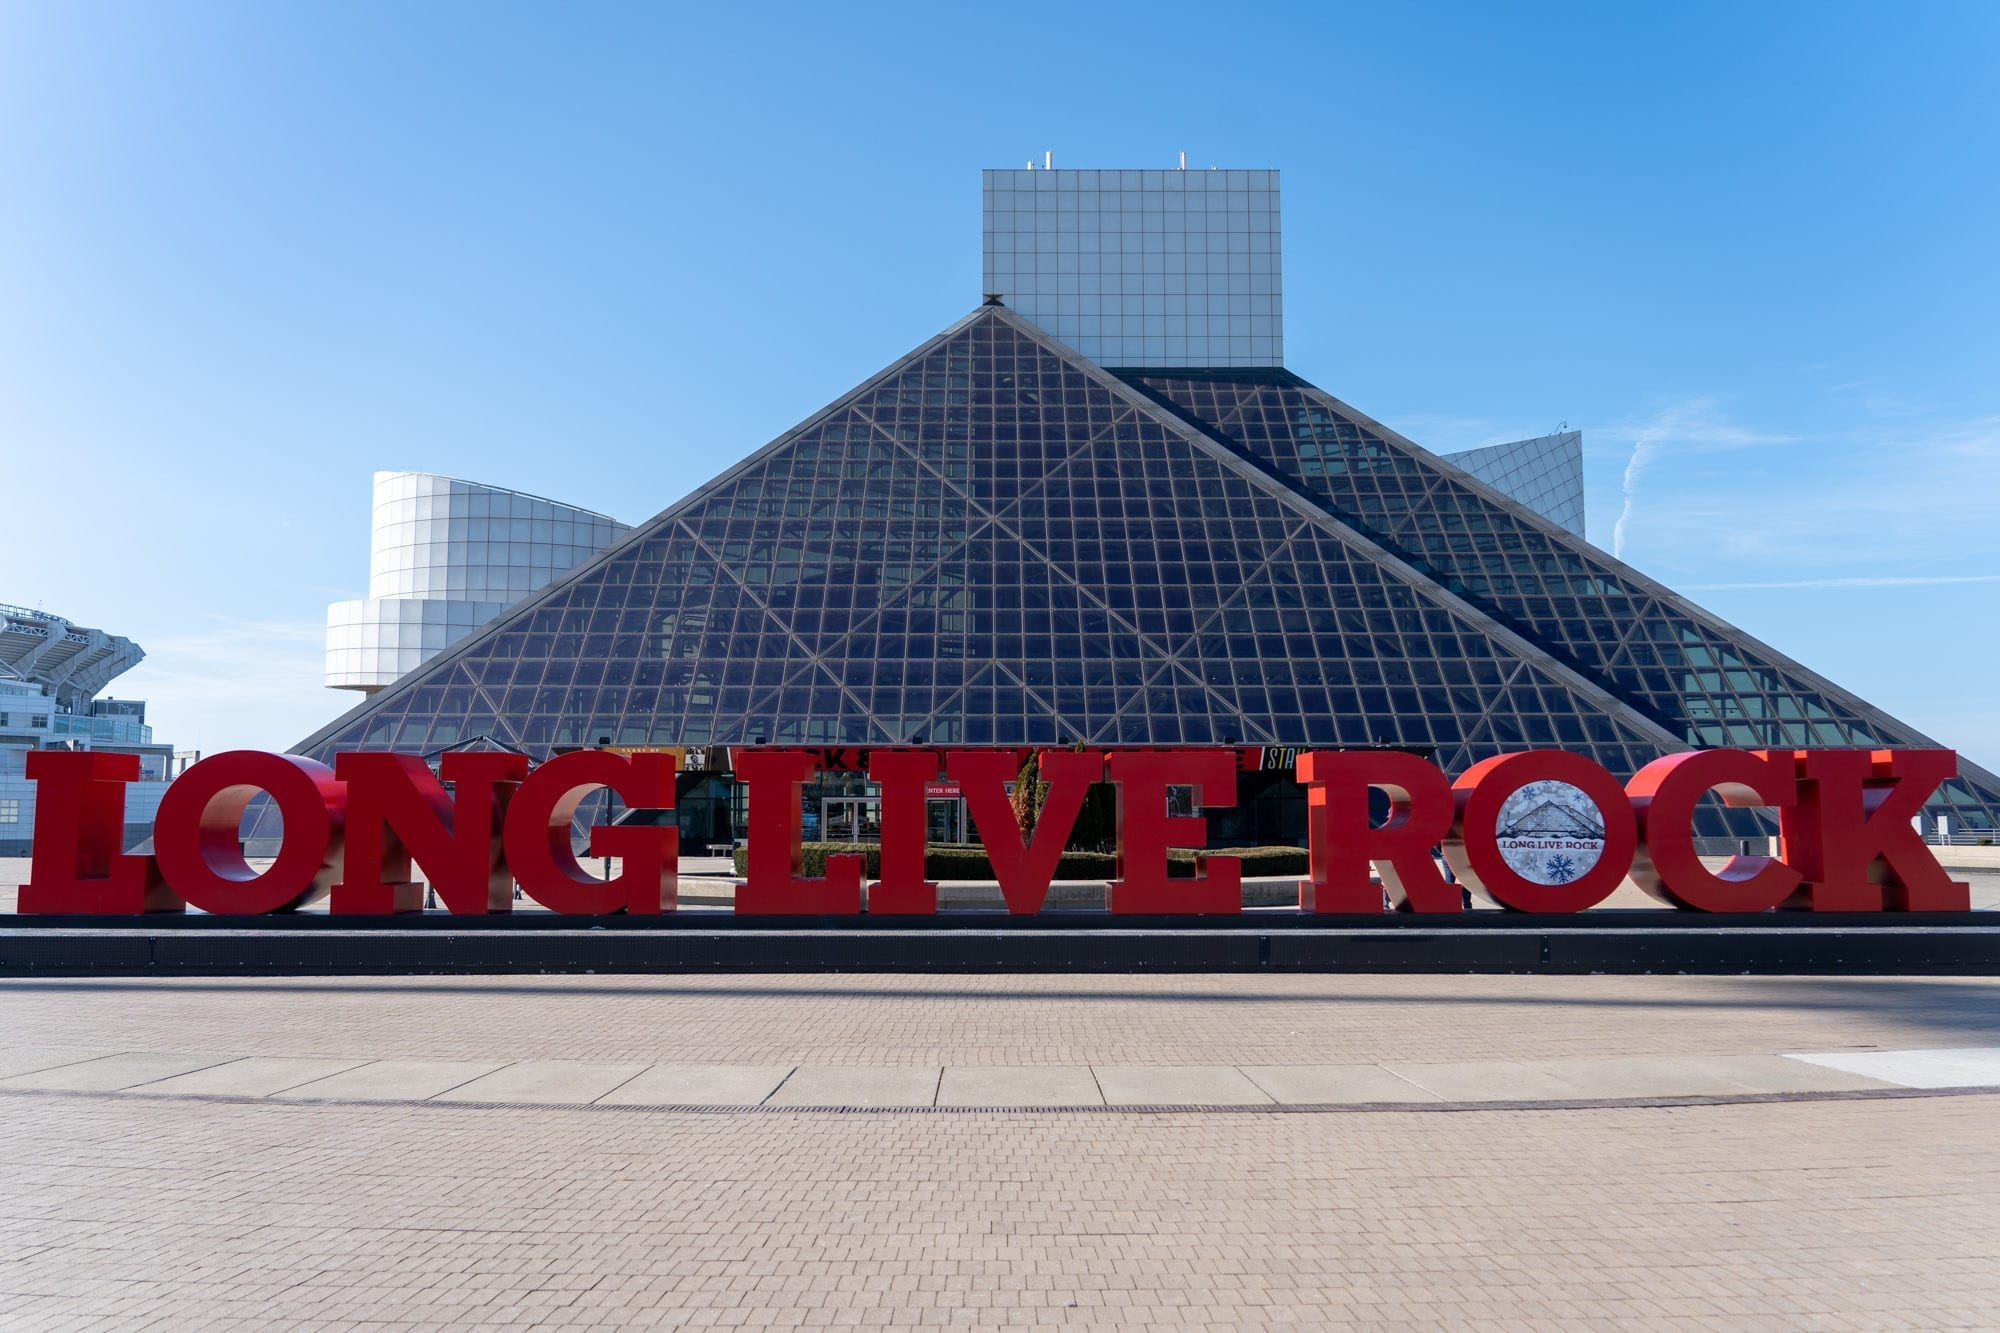 DOs and DON'Ts for Visiting the Rock and Roll Hall of Fame